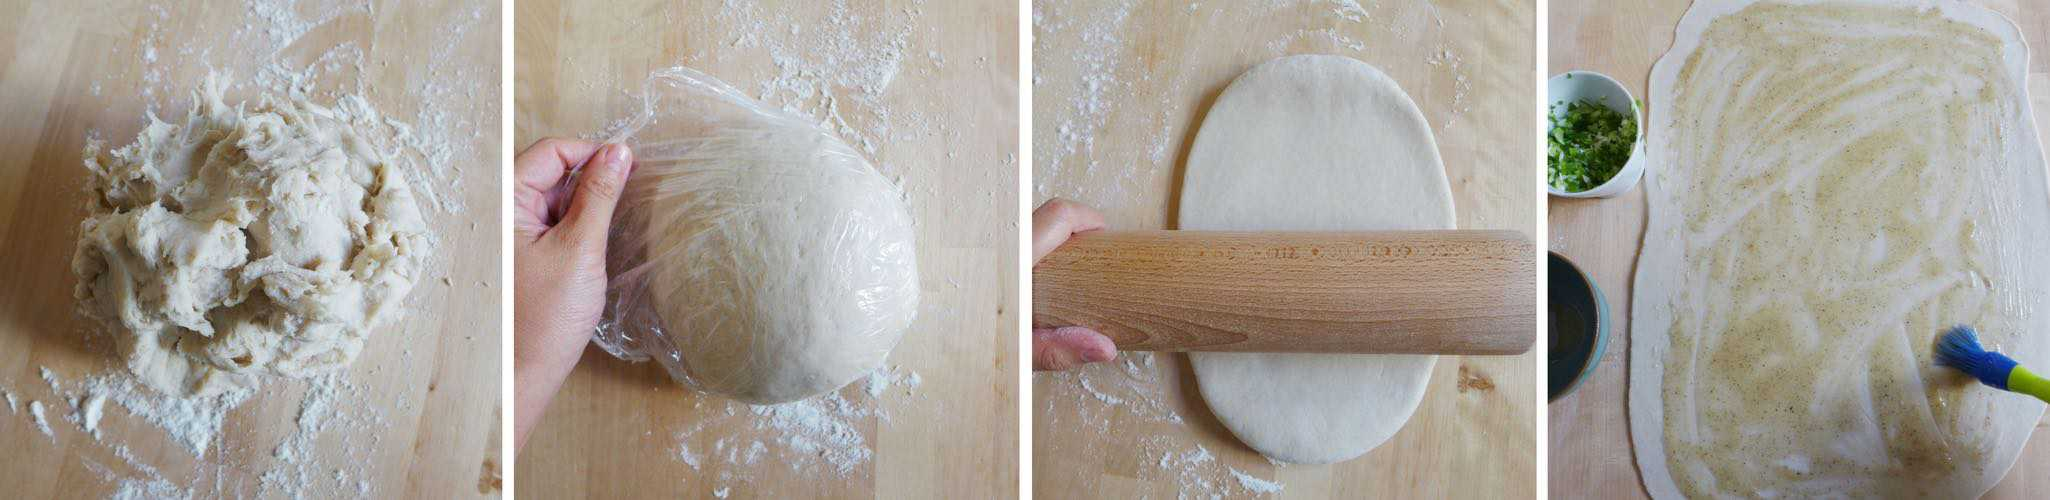 Kneading and rolling dough